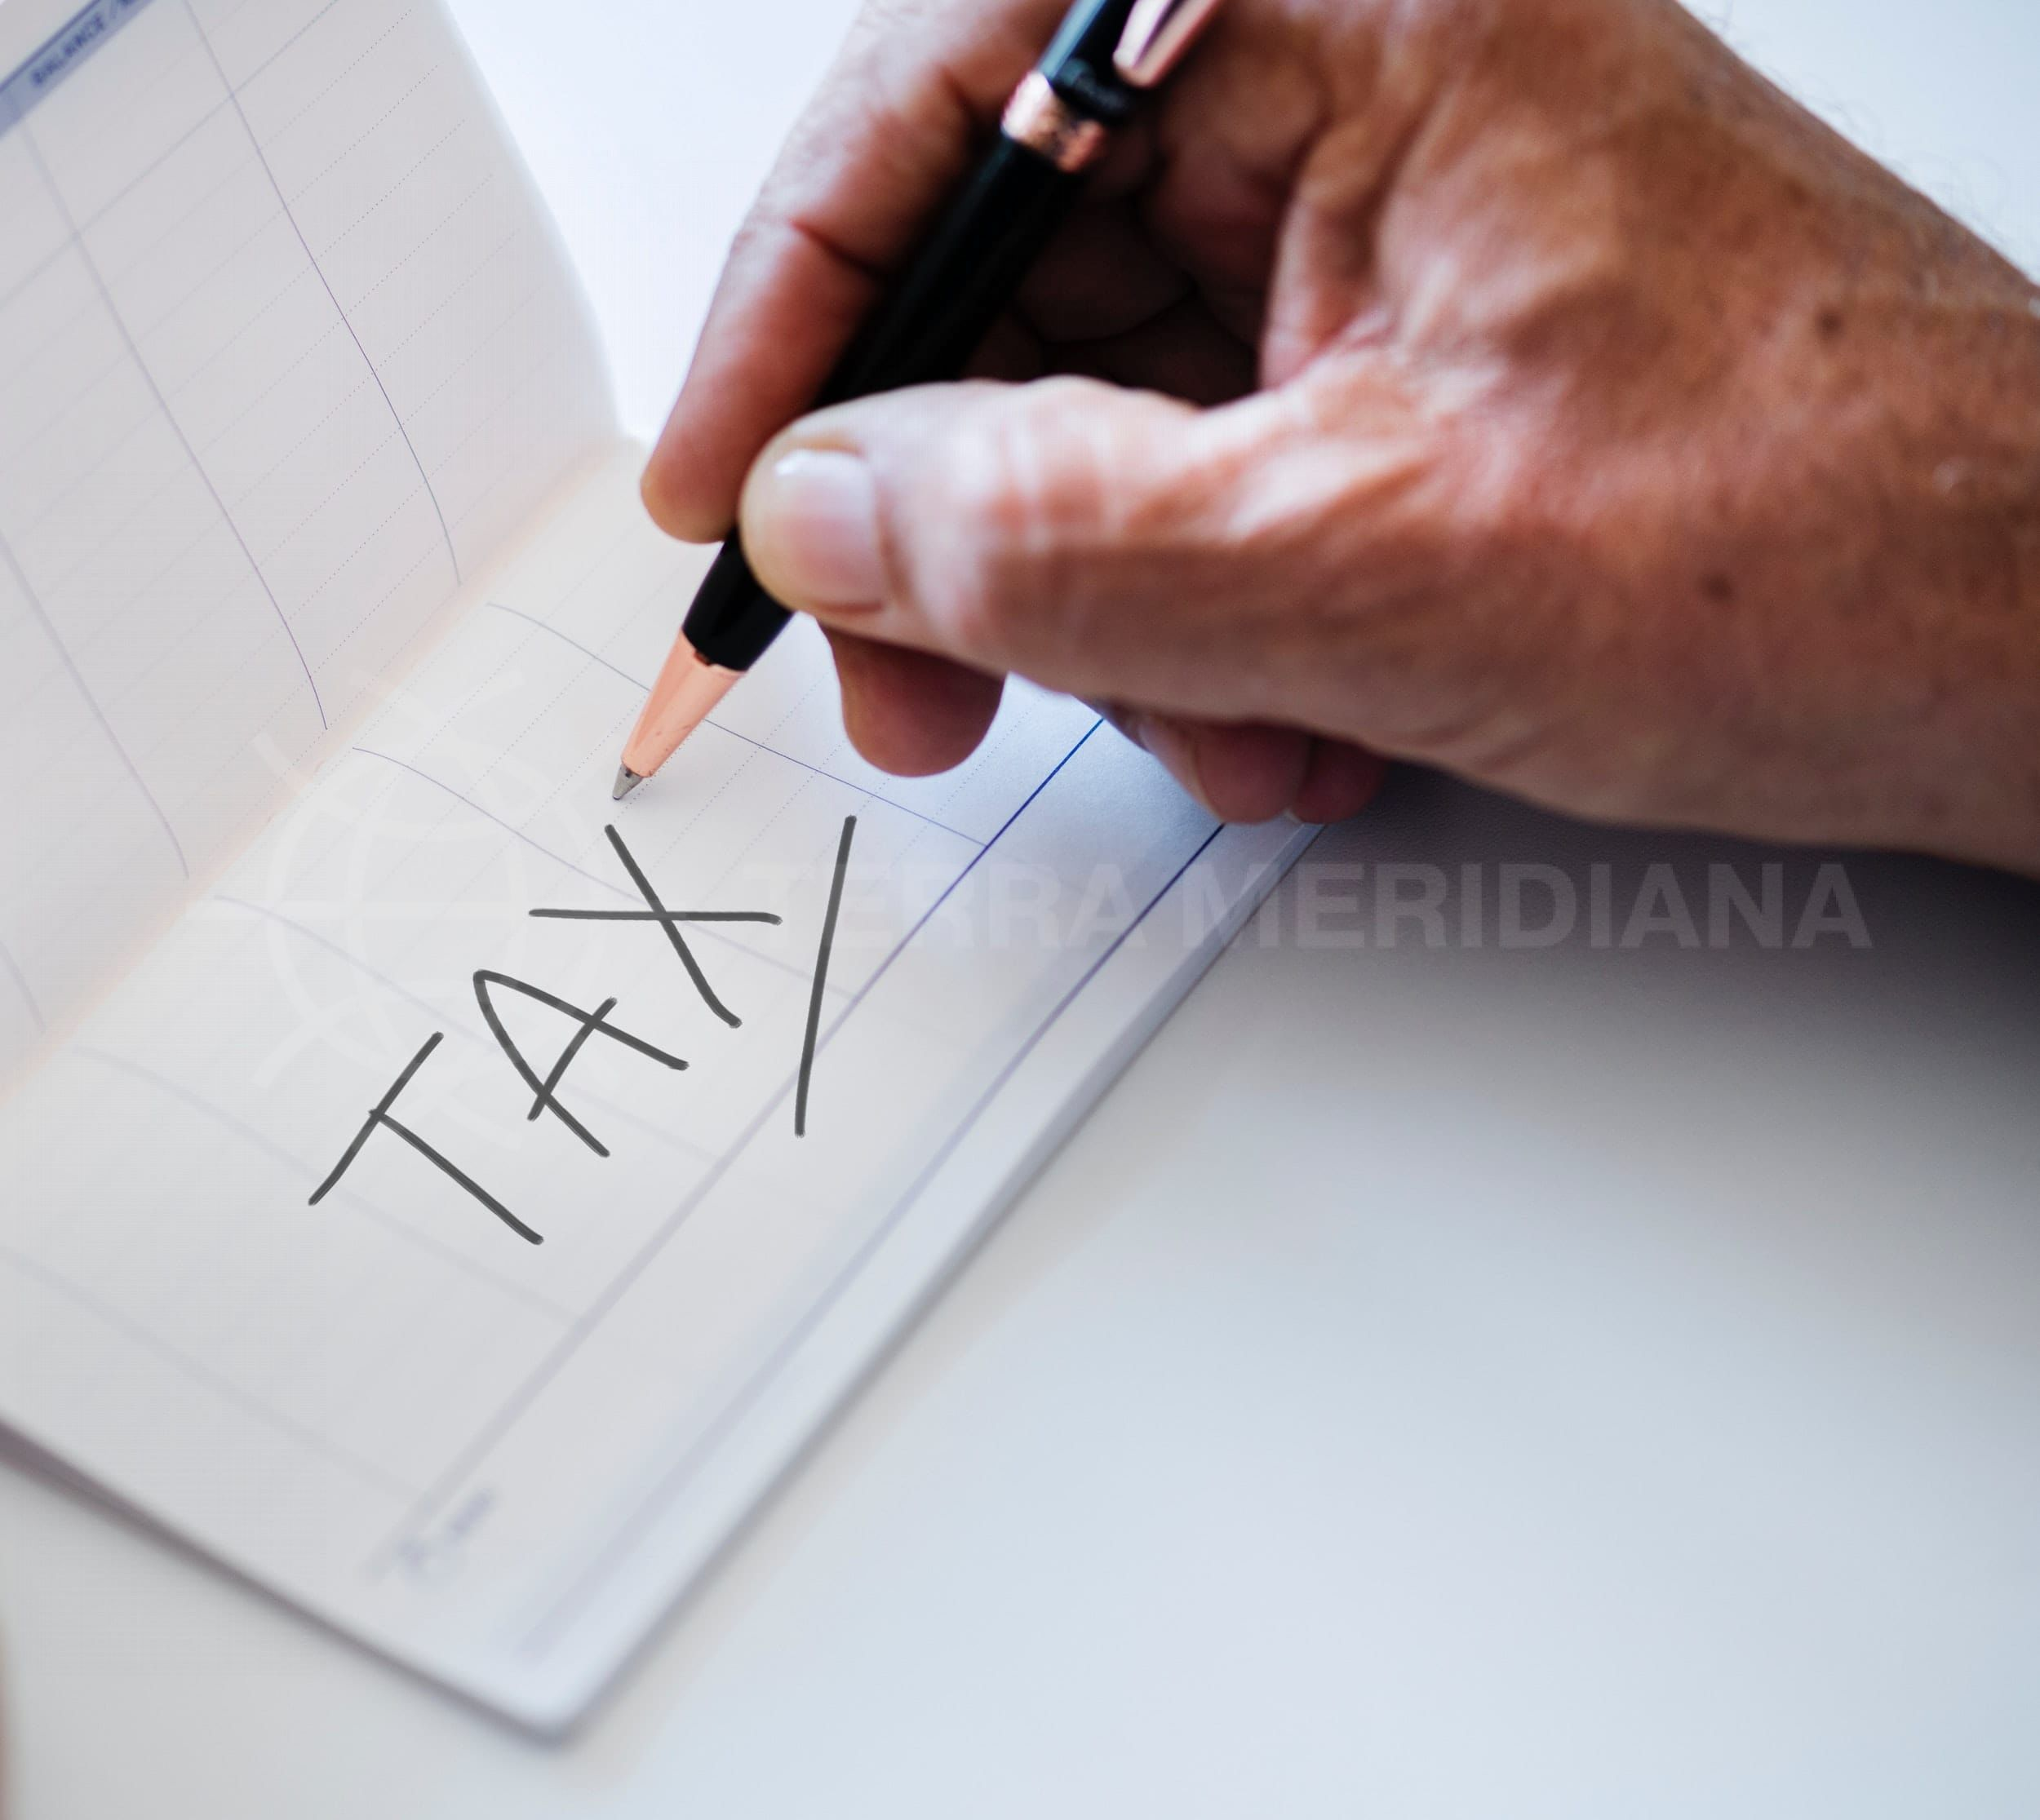 News Alert! Inheritance Tax in Andalucia slashed to zero in 2019!